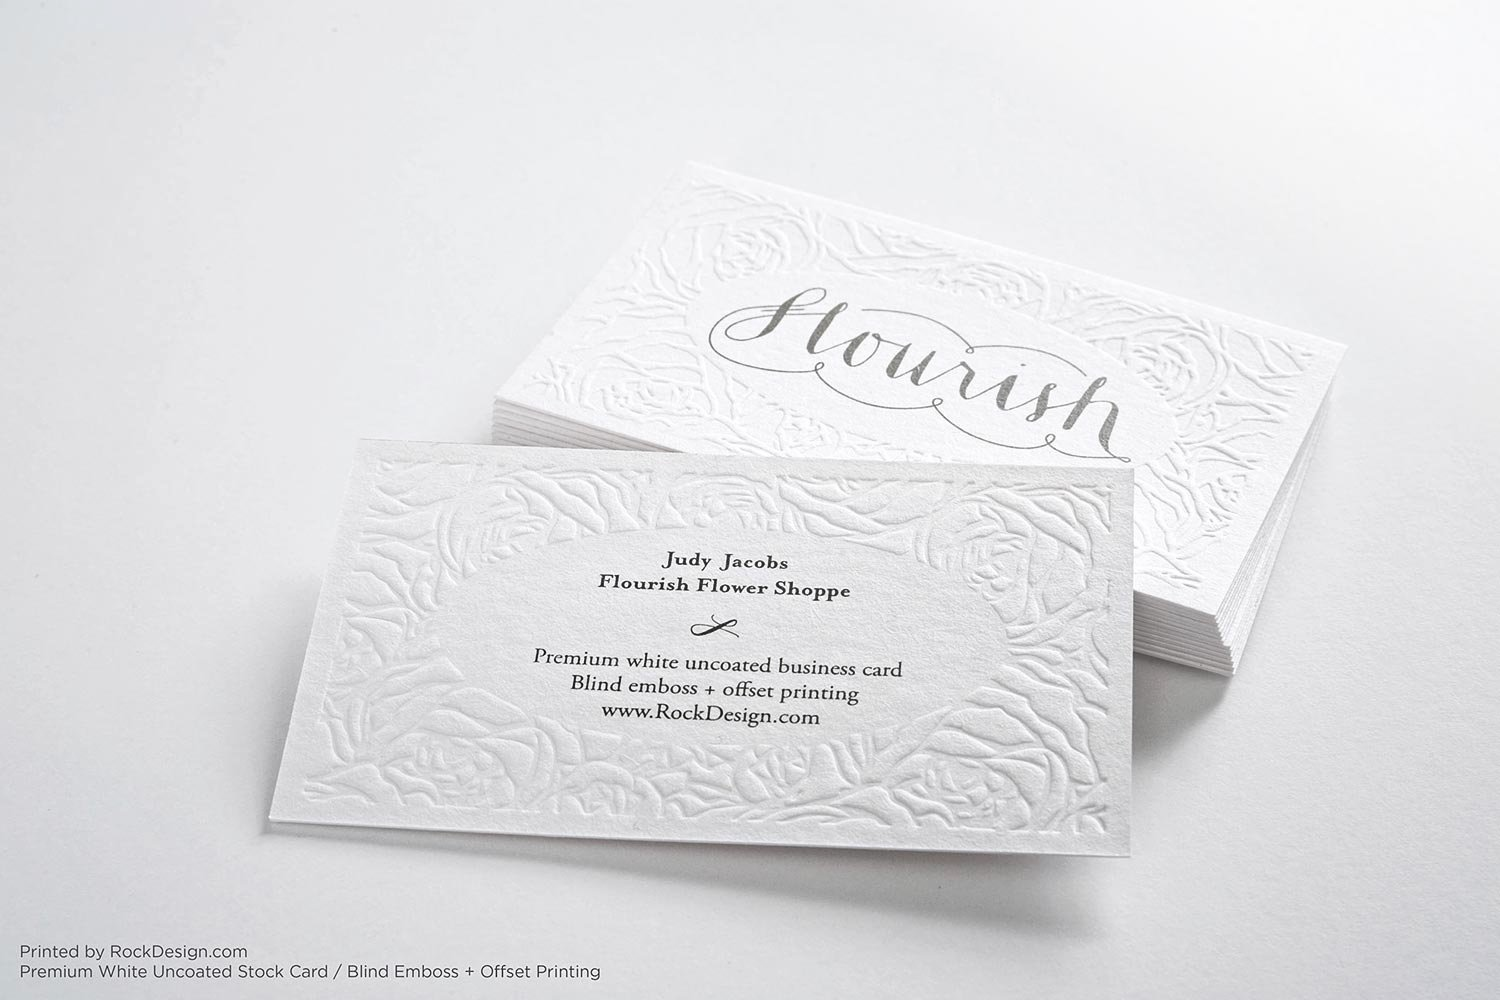 Florist Business Cards Design Luxury Find Inspiration by Exploring Out Elegant Templates